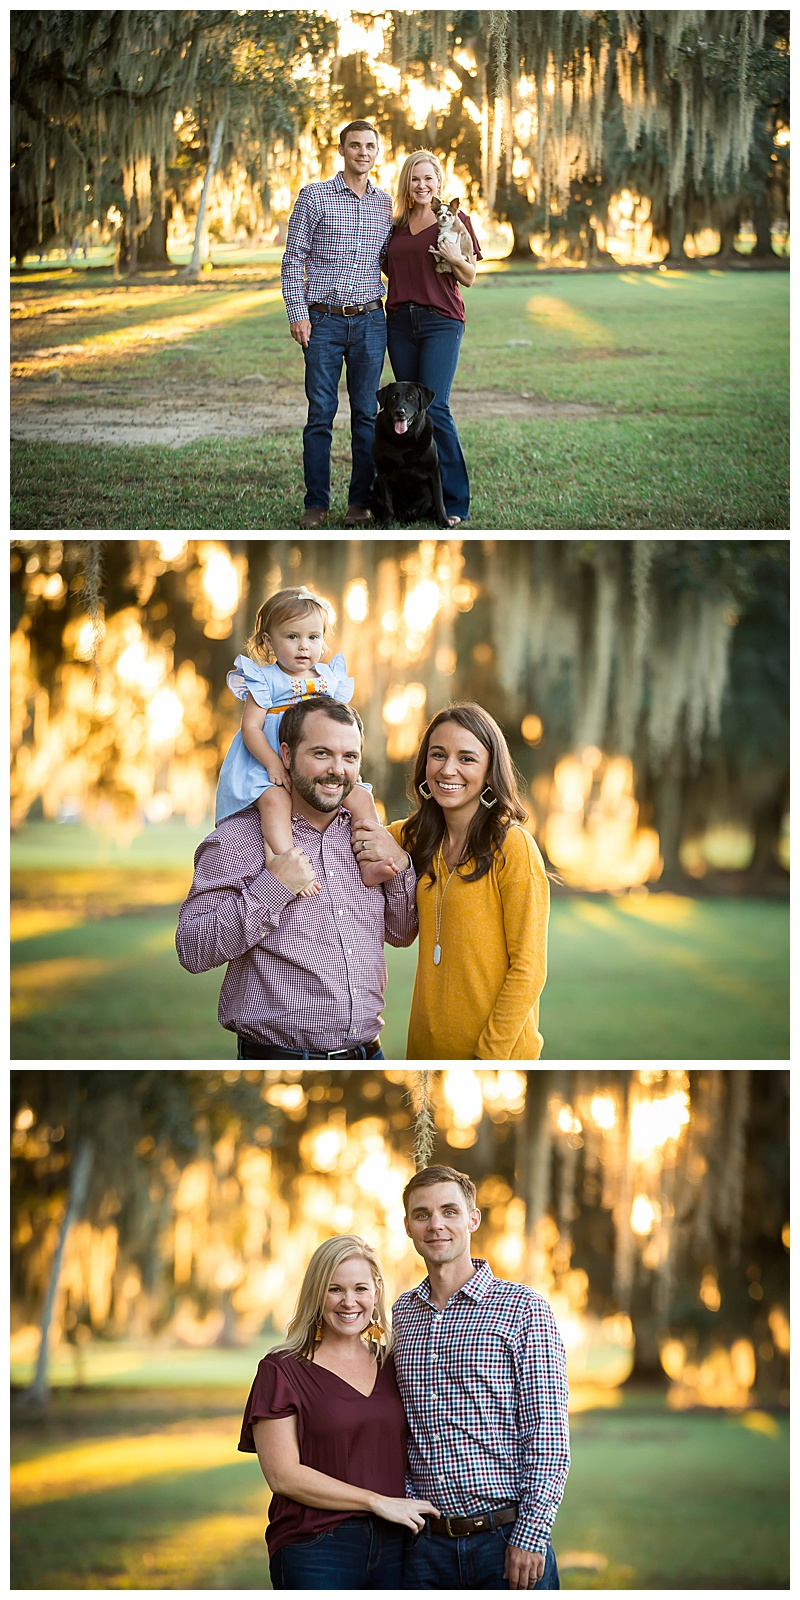 Big family photographer